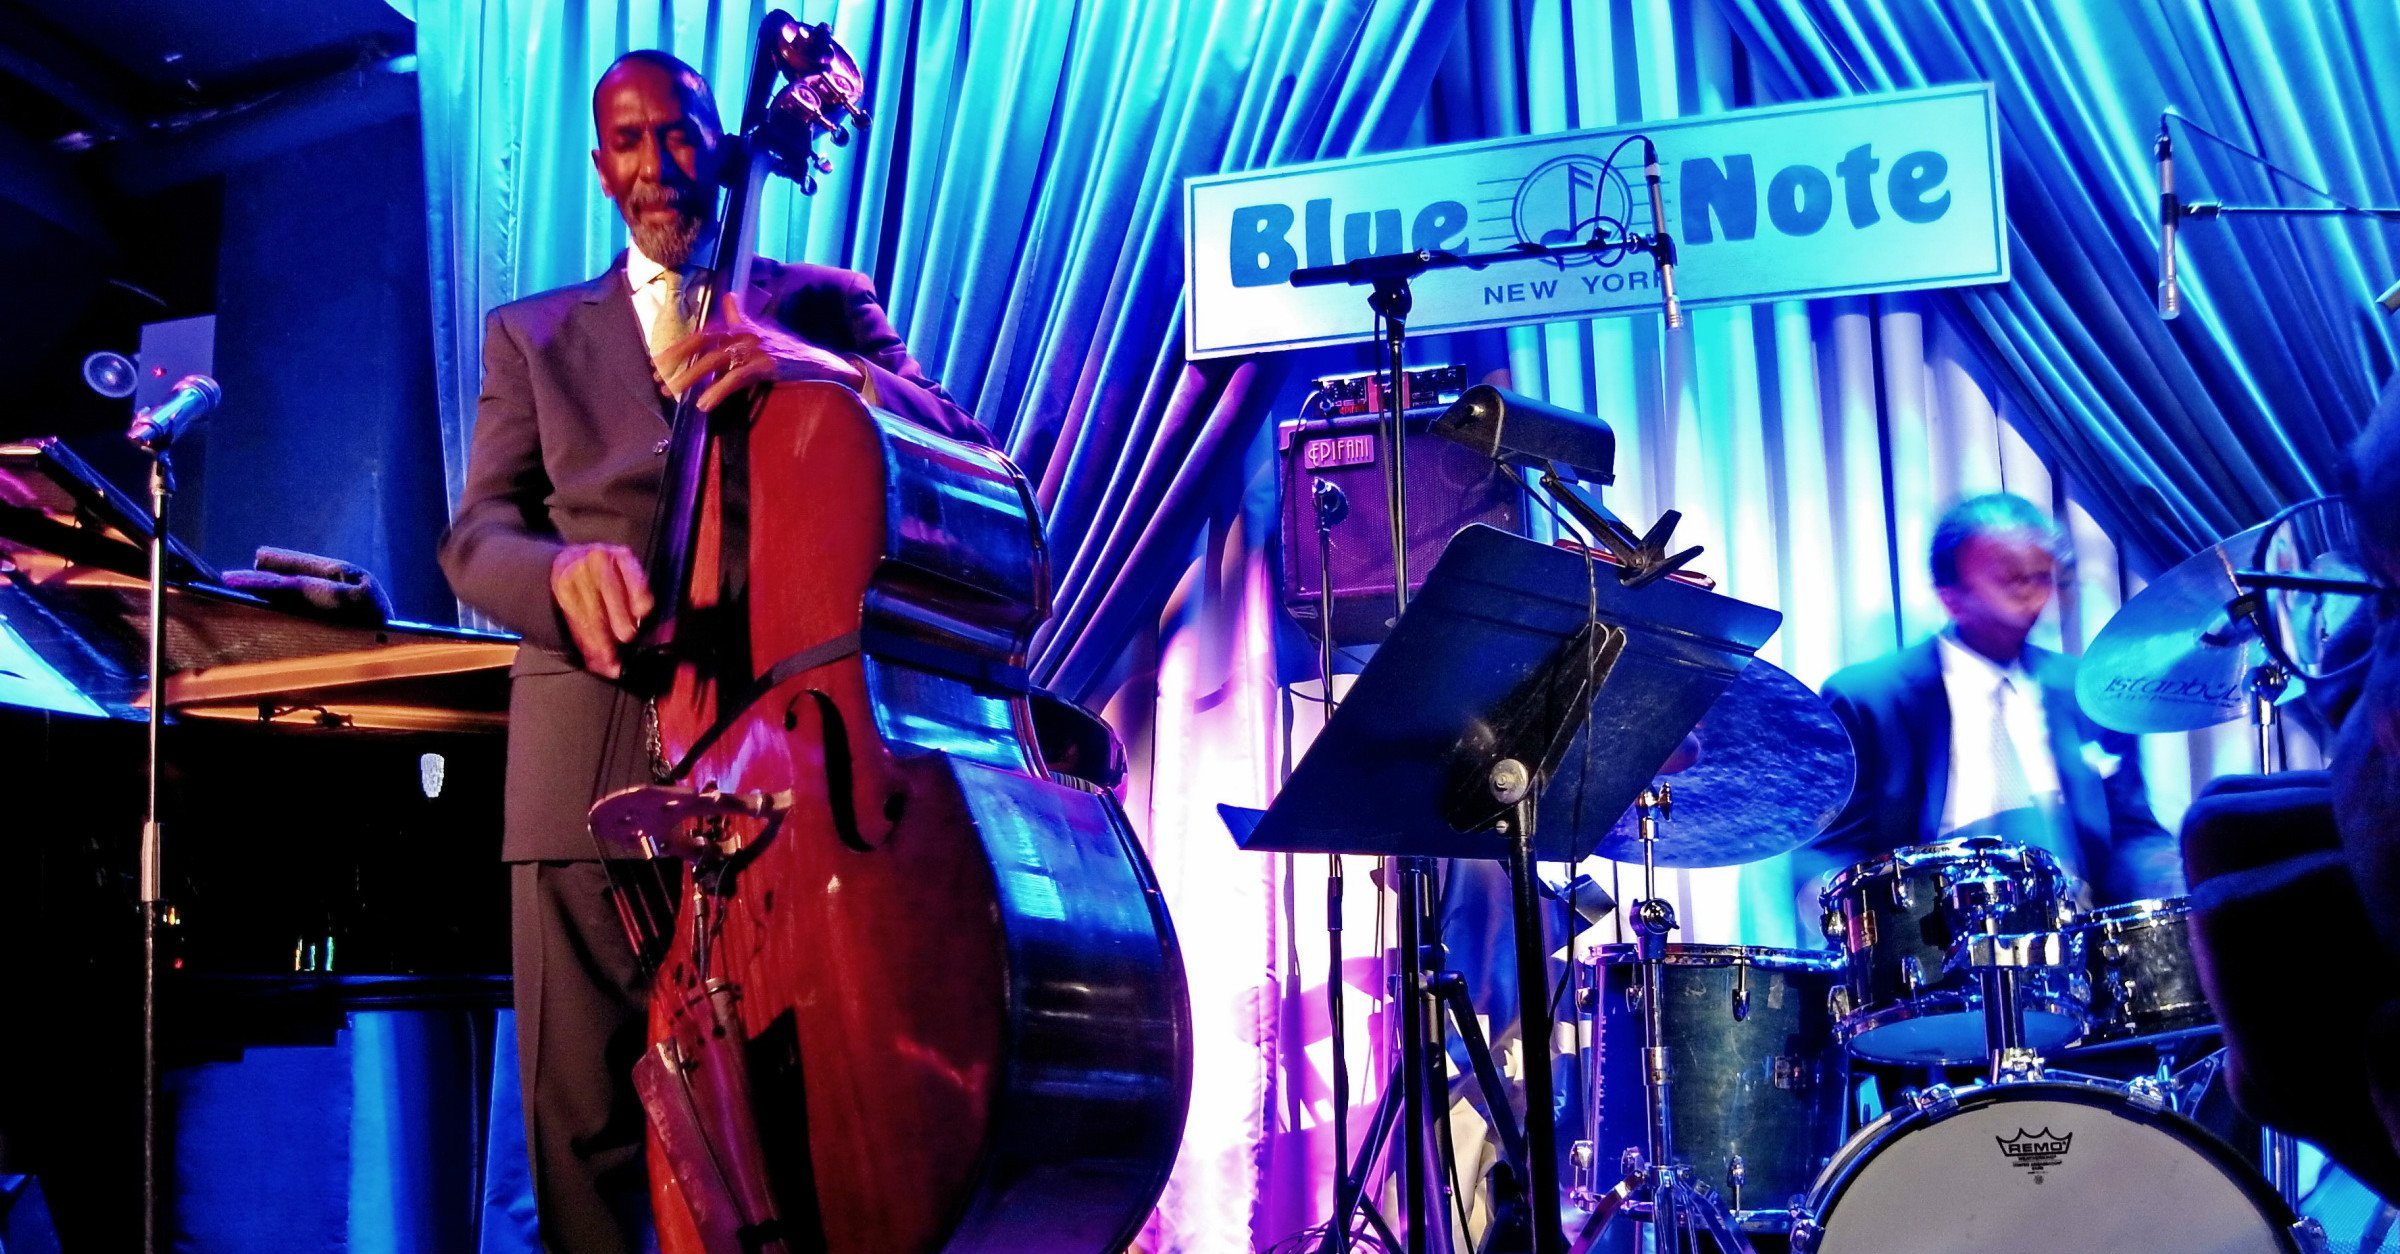 Blues and Jazz in New York City This Week - February 4-February 11